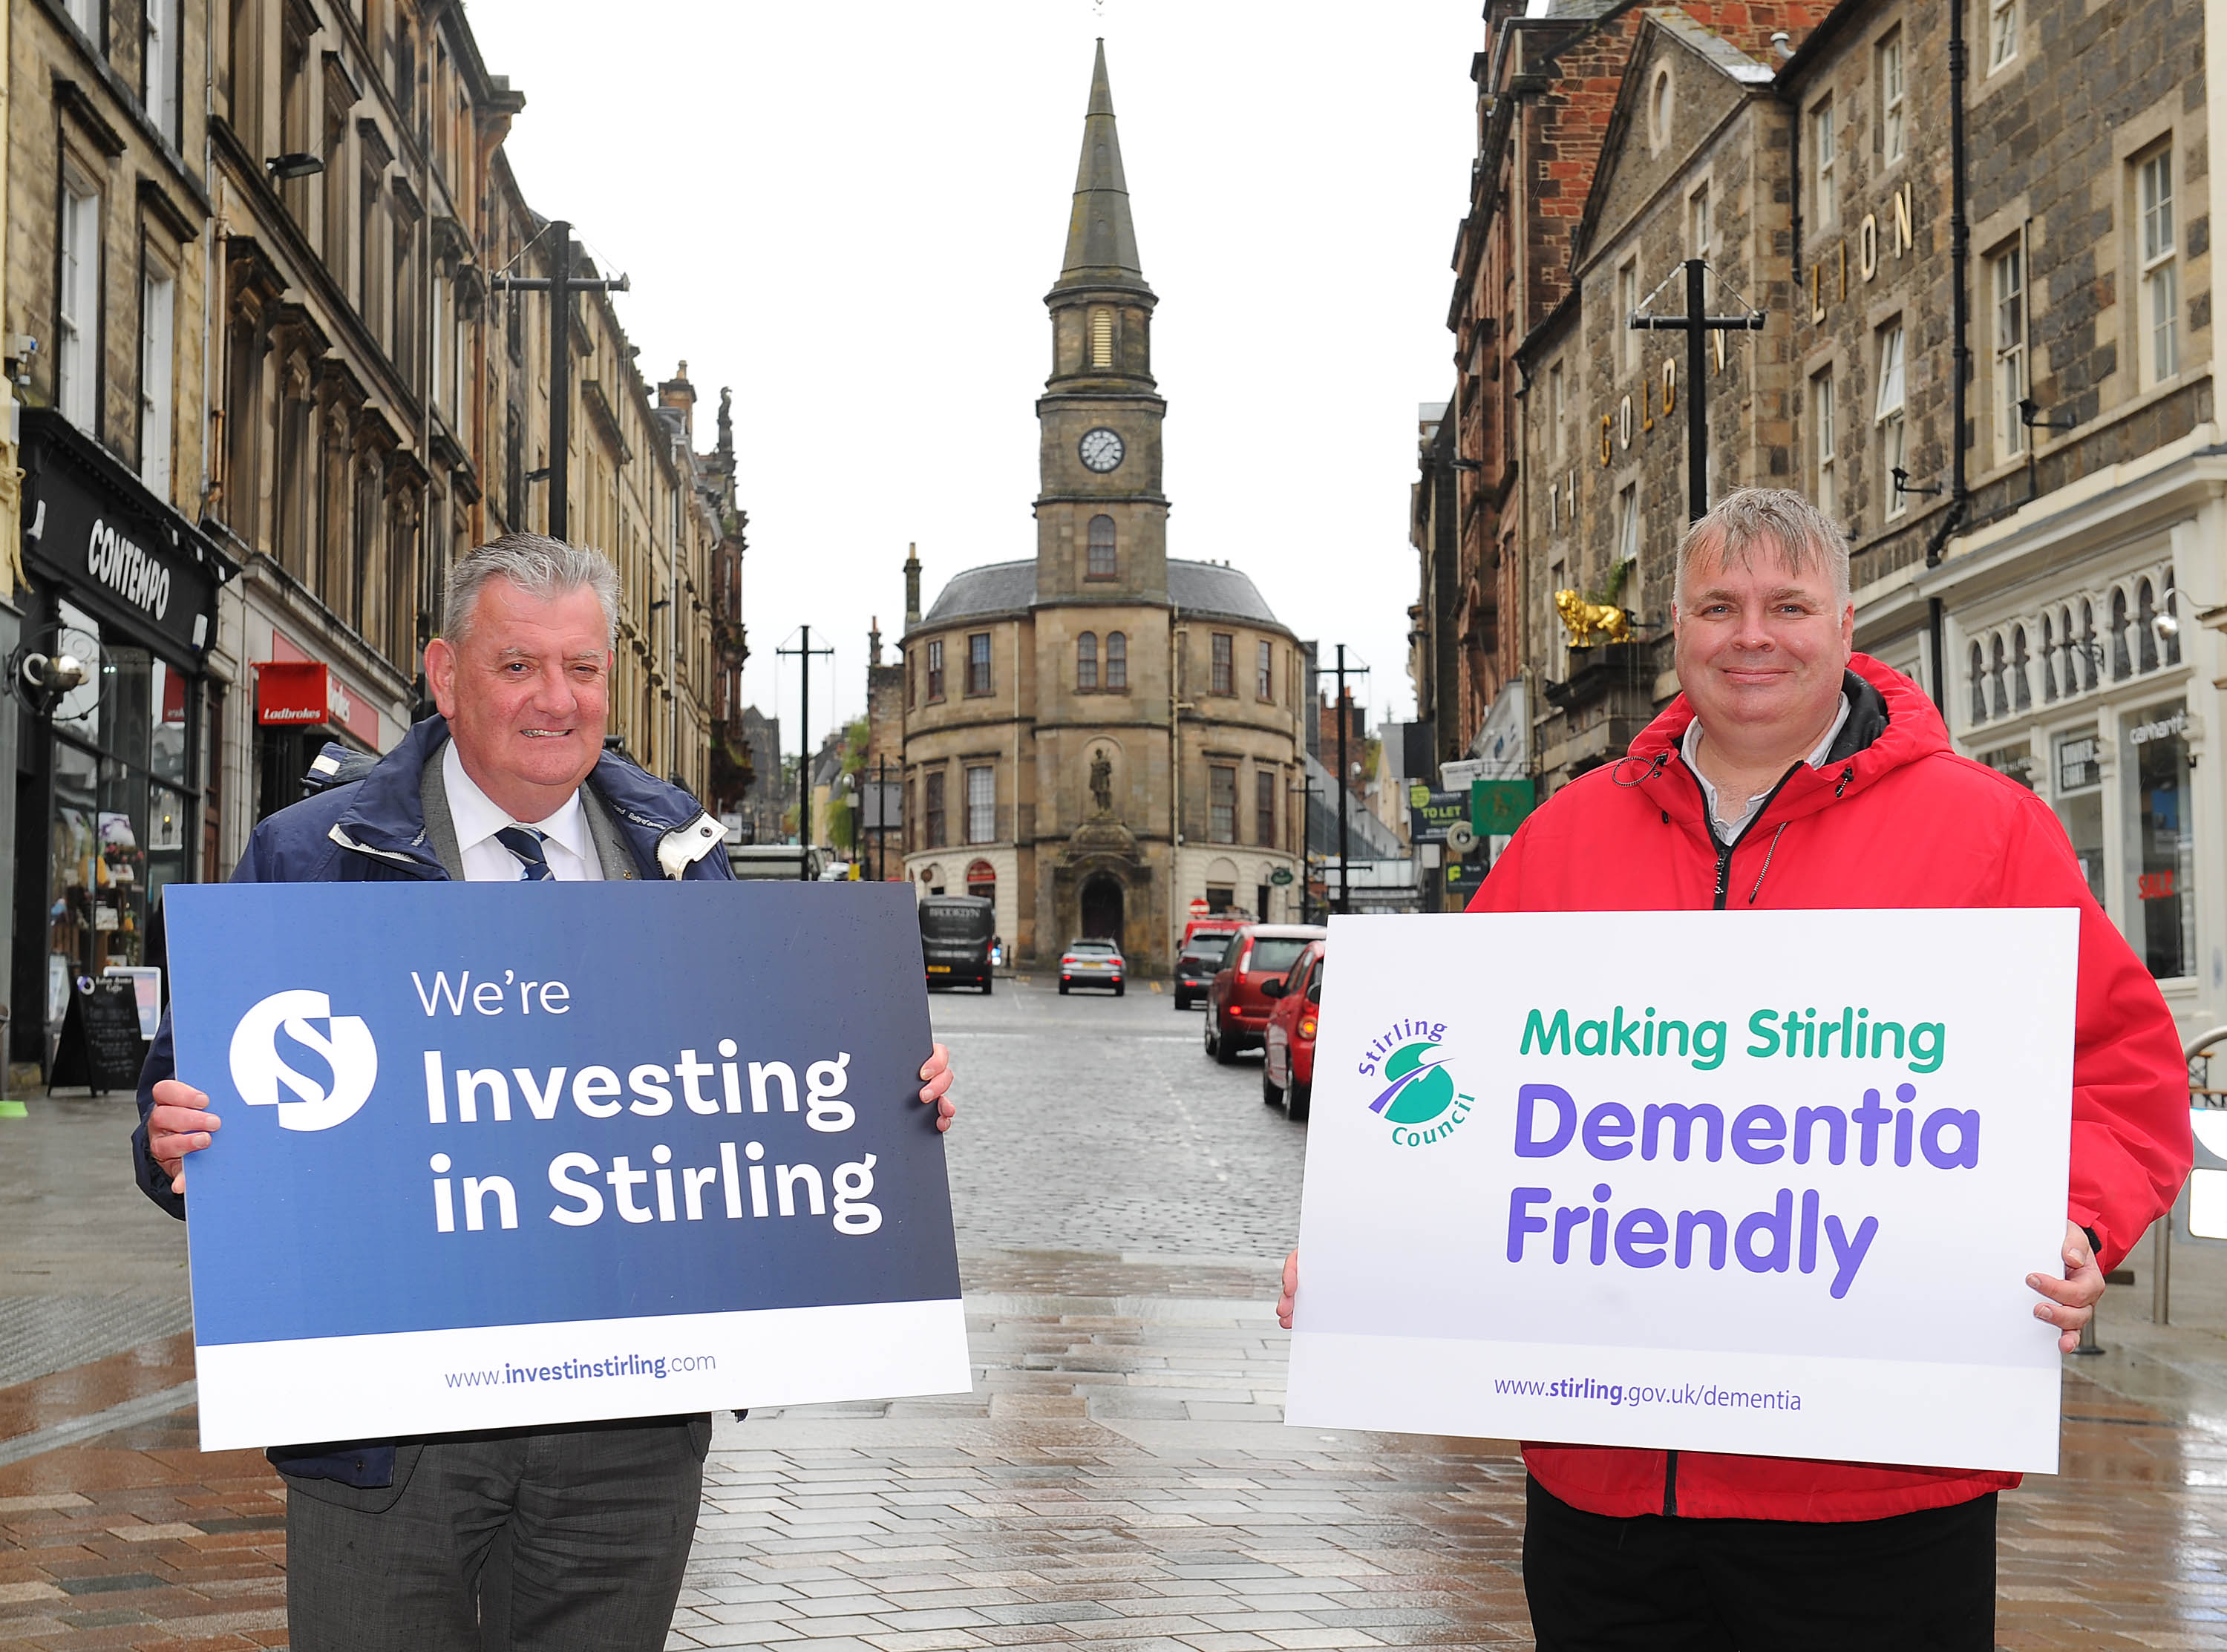 Councillors Scott Farmer and Chris Kane promoting Dementia Friendly investment in Stirling City Centre